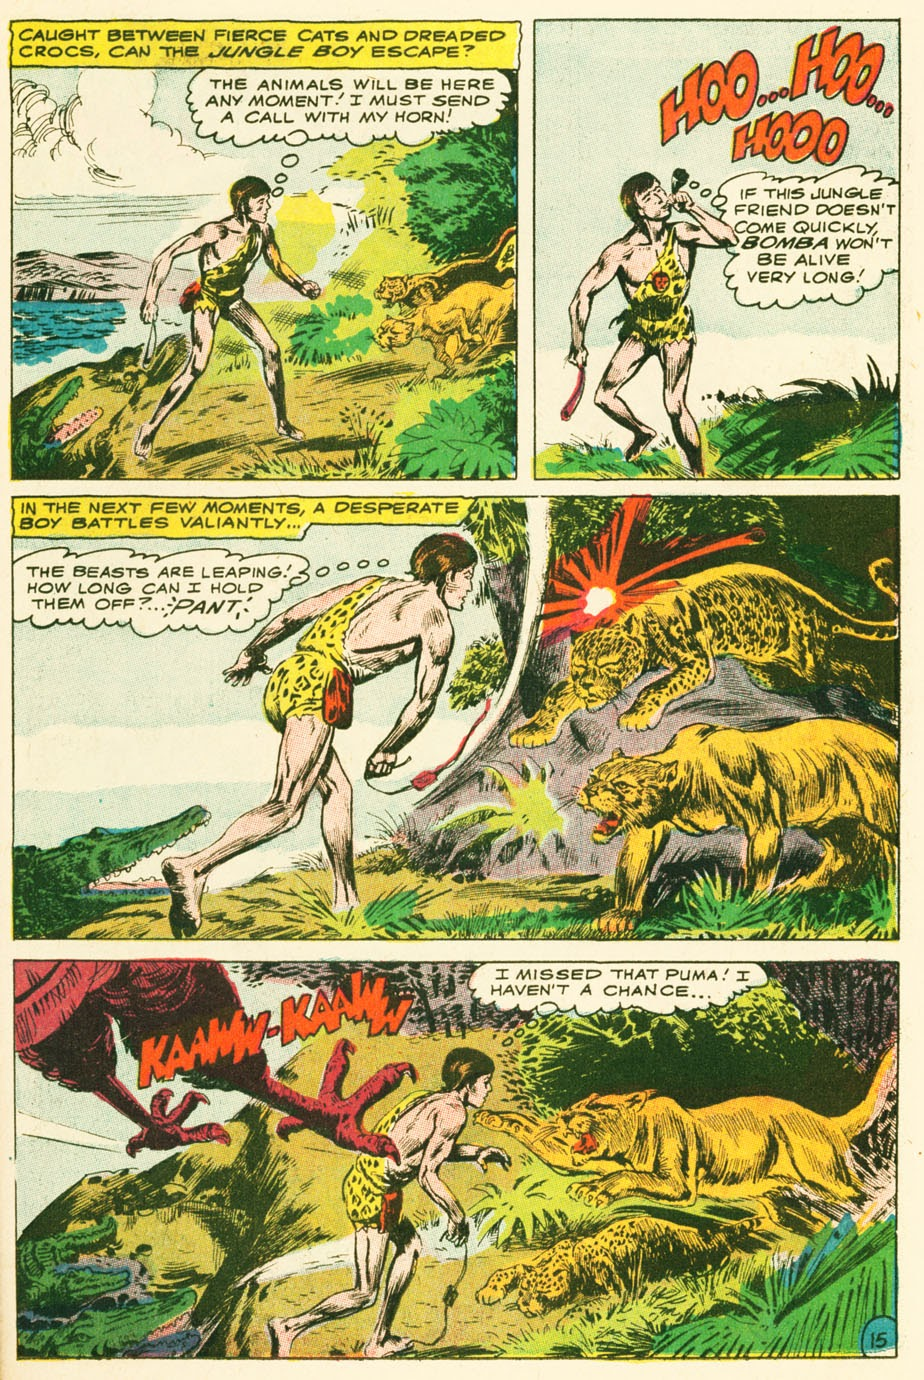 Bomba, The Jungle Boy issue 1 - Page 21